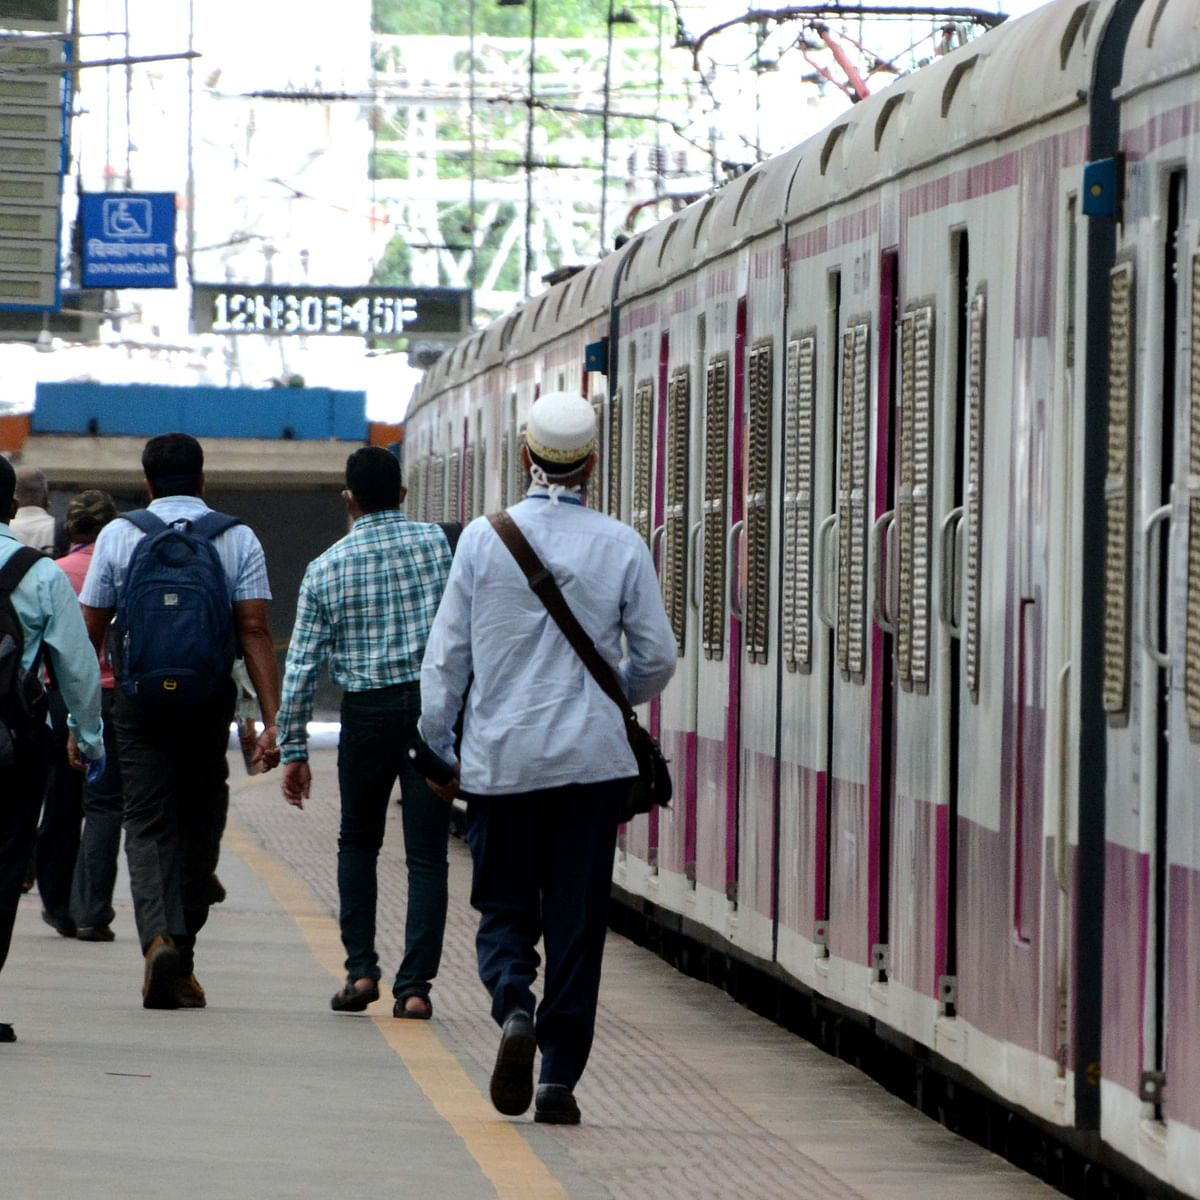 'Only 9.6 lakh passengers in WR and 12.4 lakh in CR can travel': Railways on resuming local trains for general public